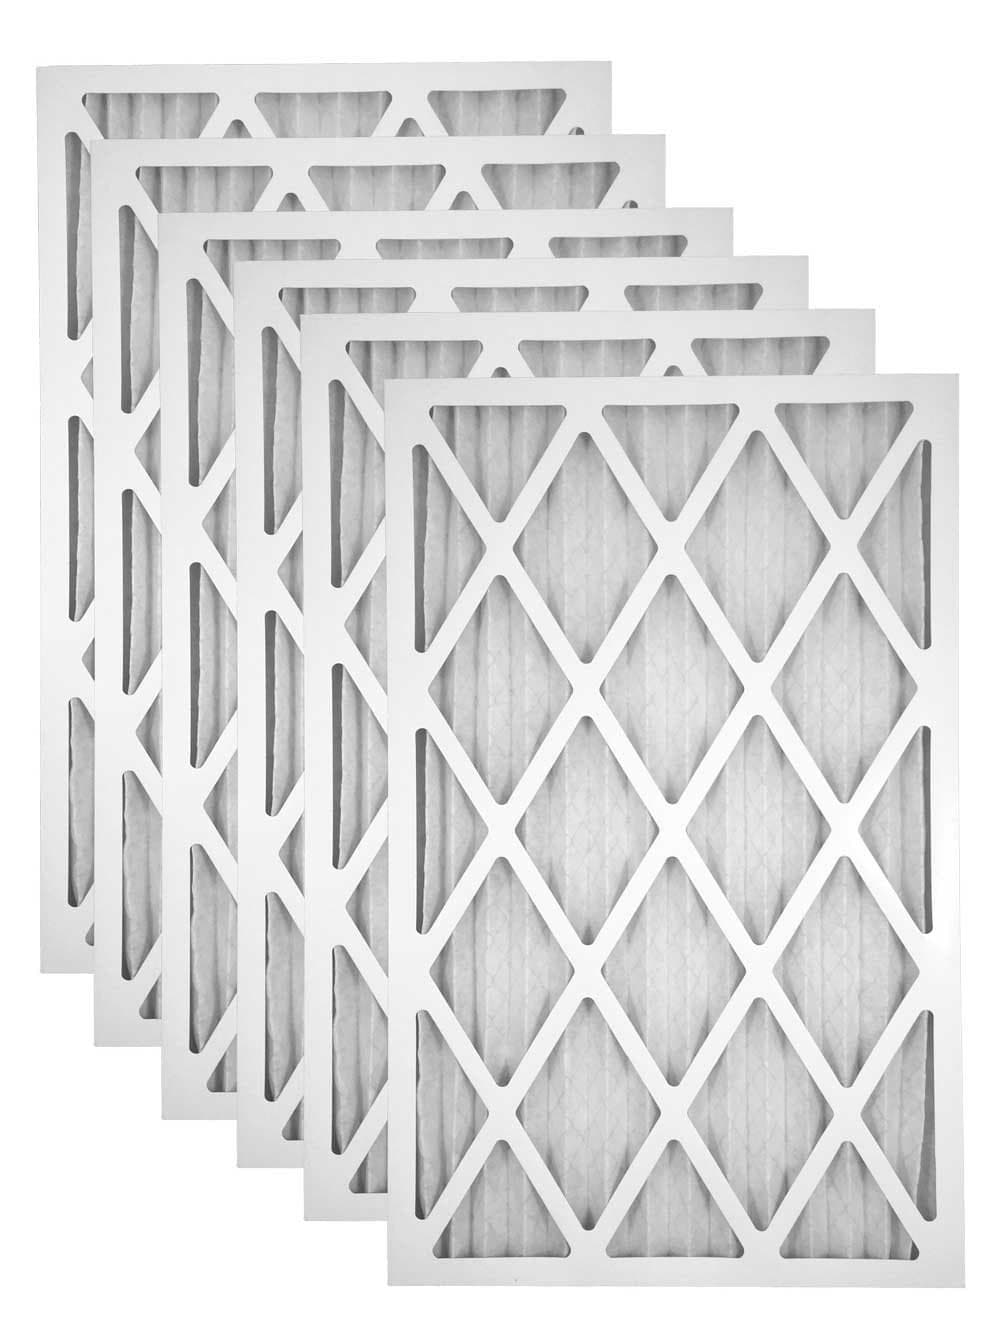 25x25x1 Merv 13 Pleated Geothermal Furnace Filter - Case of 6 by Atomic Filters